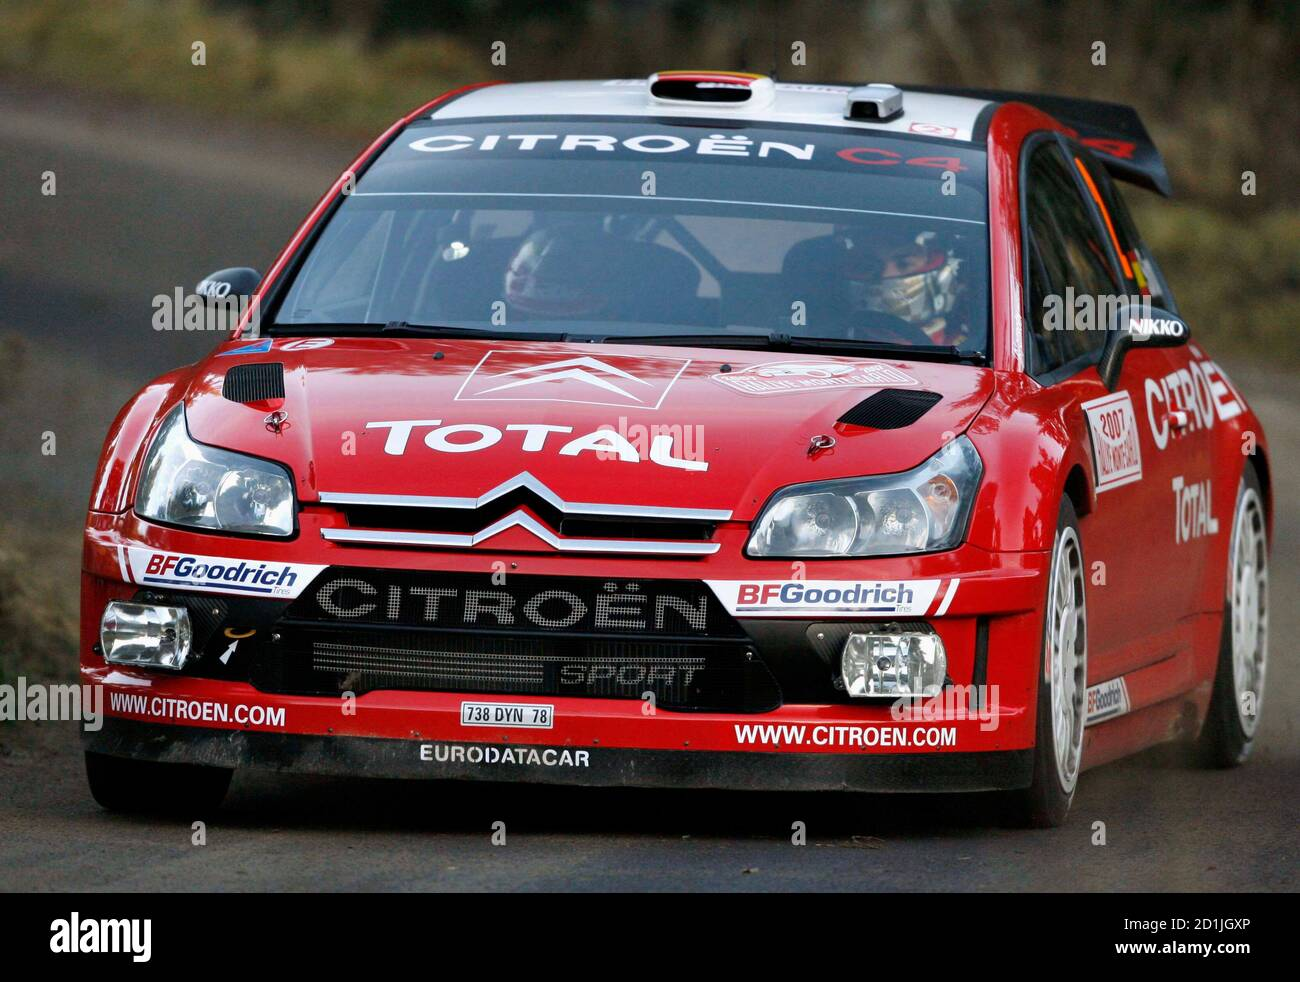 Daniel Sordo and Marc Marti of Spain drive their Citroen C4 during the tenth stage of the Rally of Monte-Carlo, the loop stage starting at Saint-Bonnet-le-Froid, southeastern France, January 20, 2007.     REUTERS/Robert Pratta   (FRANCE) Banque D'Images